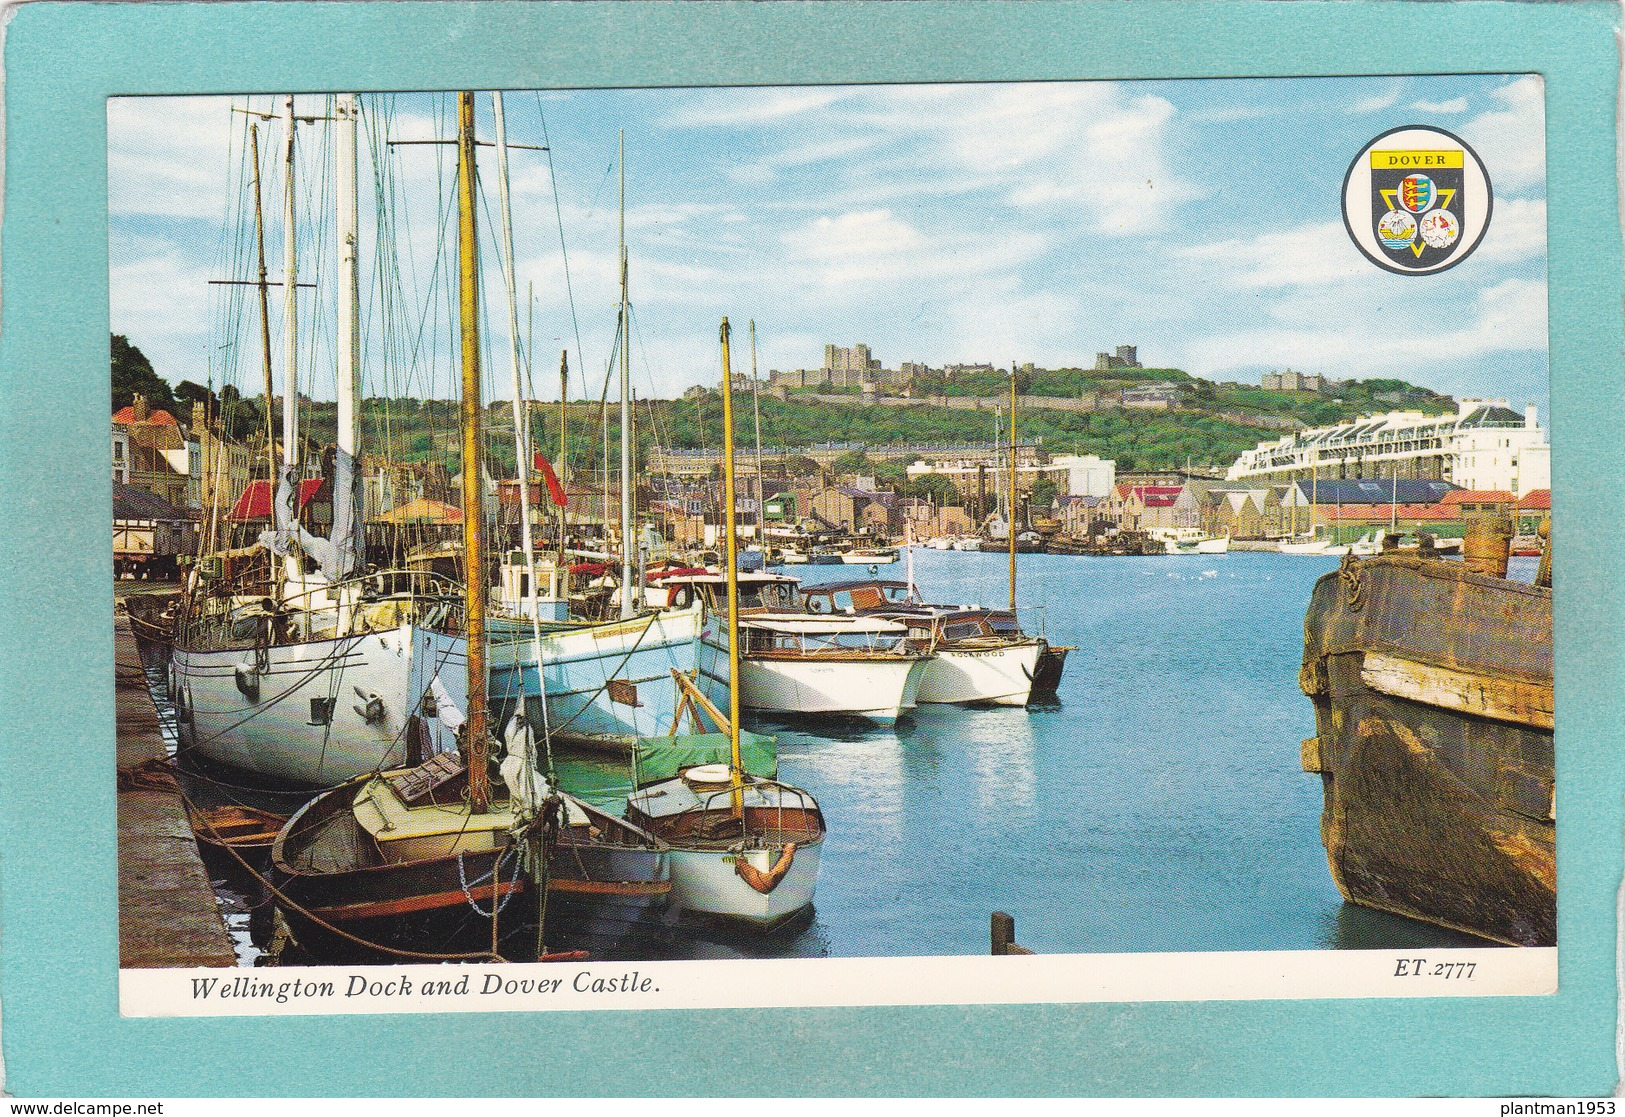 Old Small Postcard Of Wellington Dock And Dover Castle.Kent,England,R48. - Dover